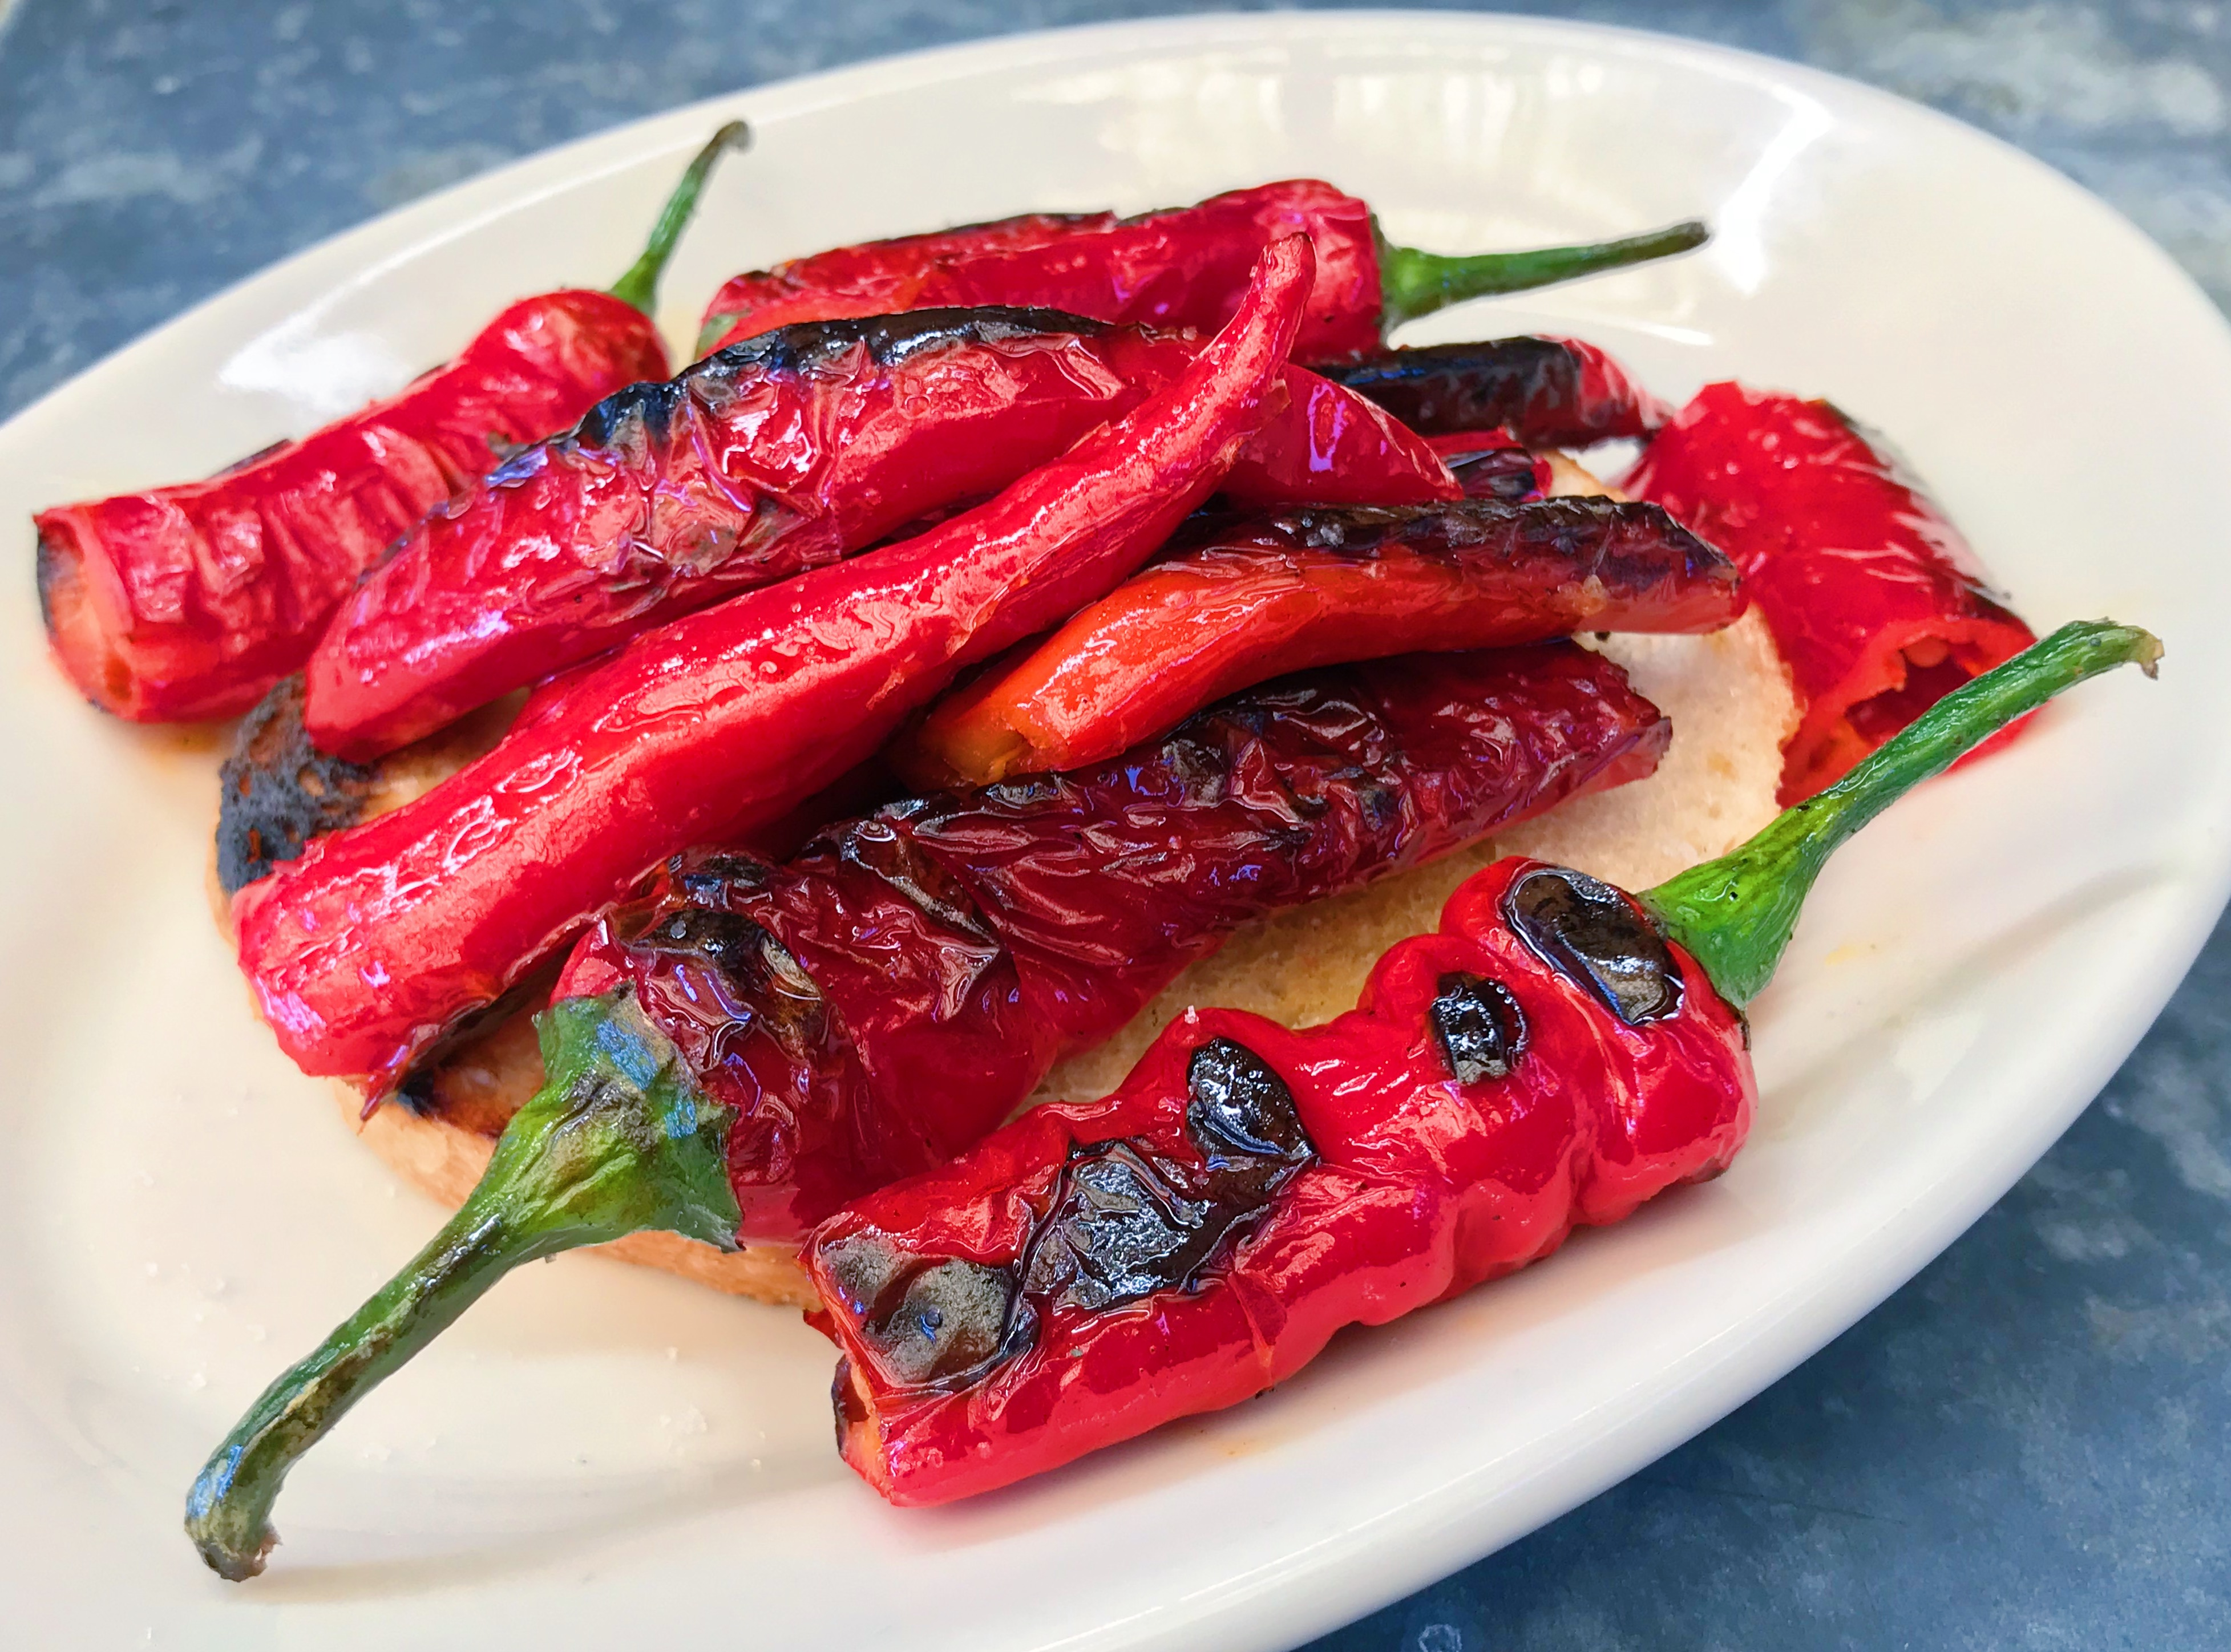 A plate of sautéed Jimmy Nardello peppers at the Roadhouse.